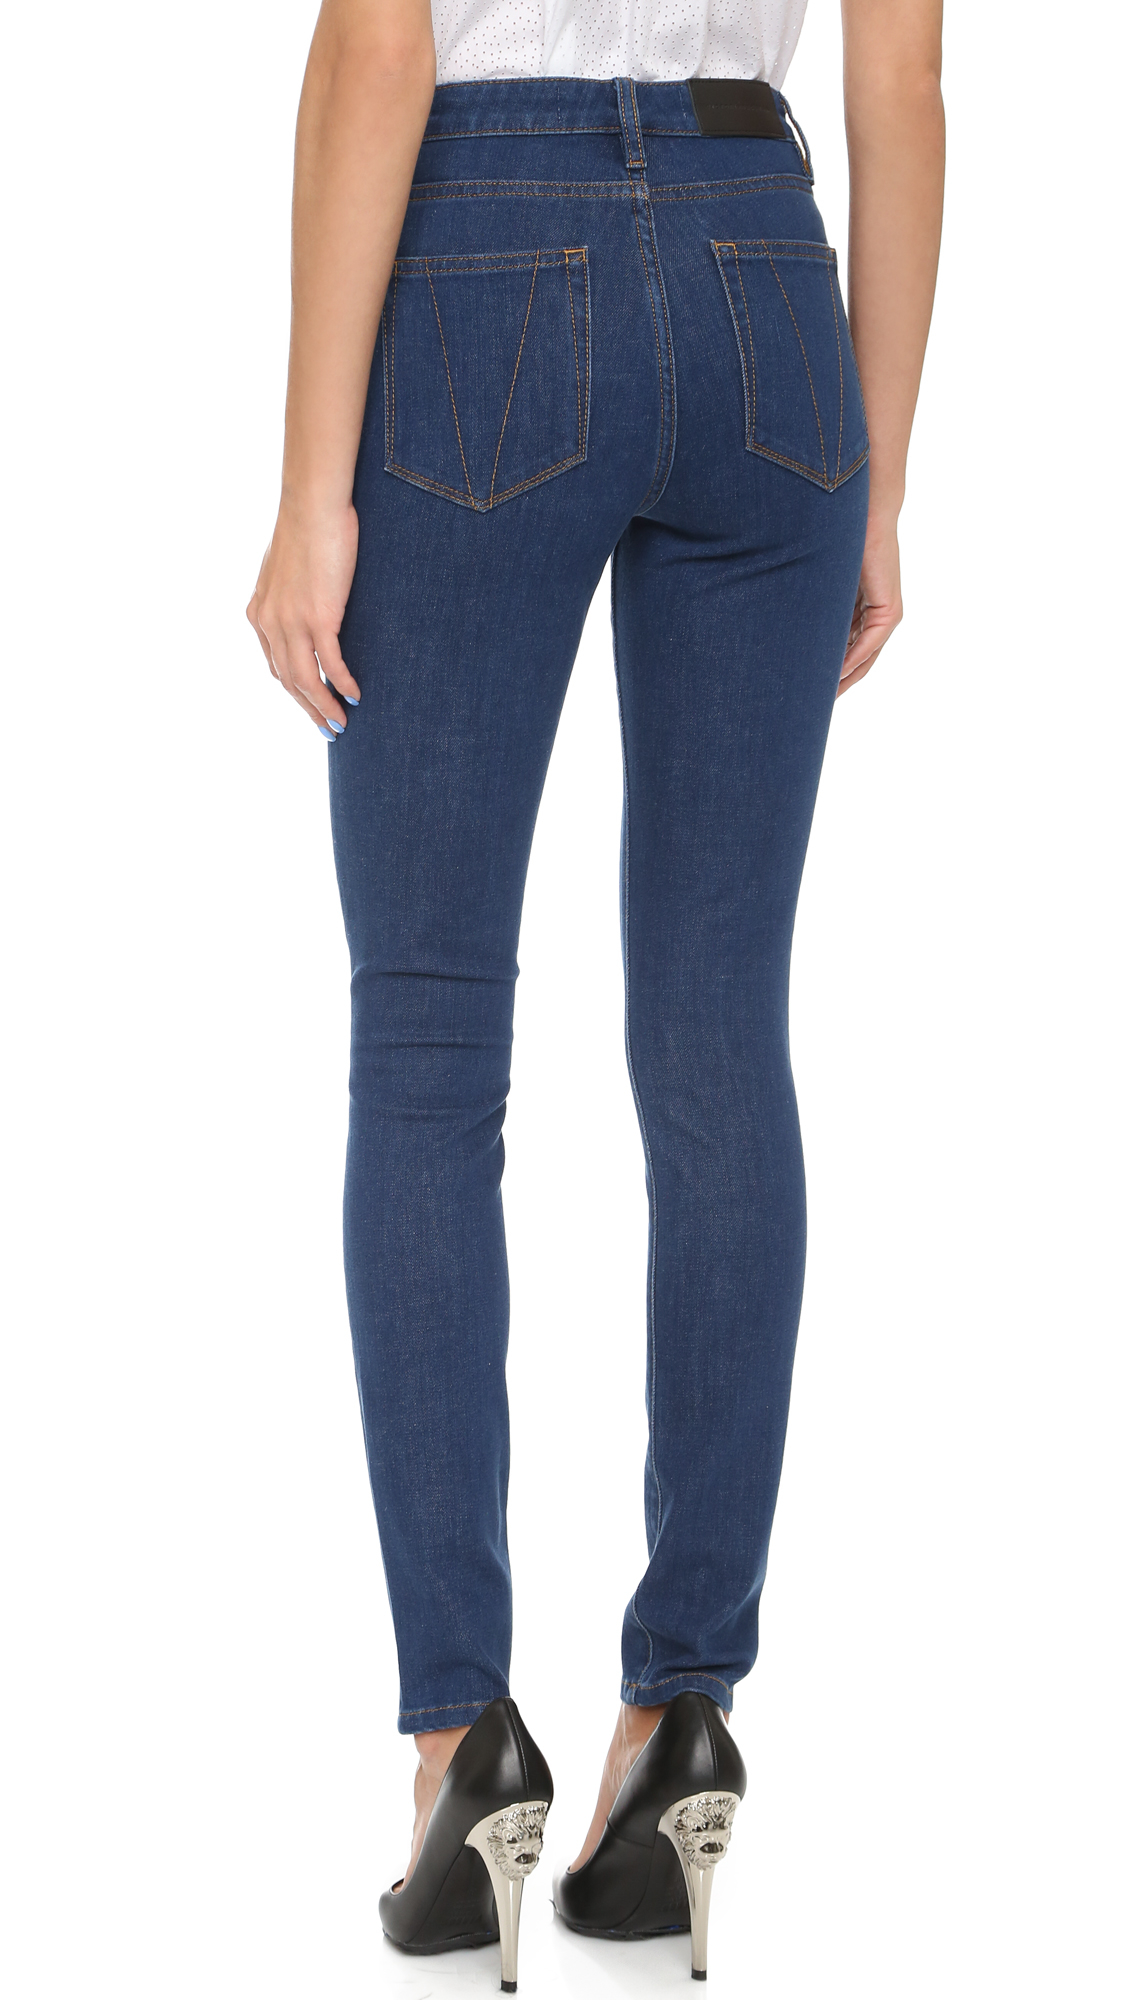 victoria beckham powerhigh skinny jeans blue 17 in blue lyst. Black Bedroom Furniture Sets. Home Design Ideas